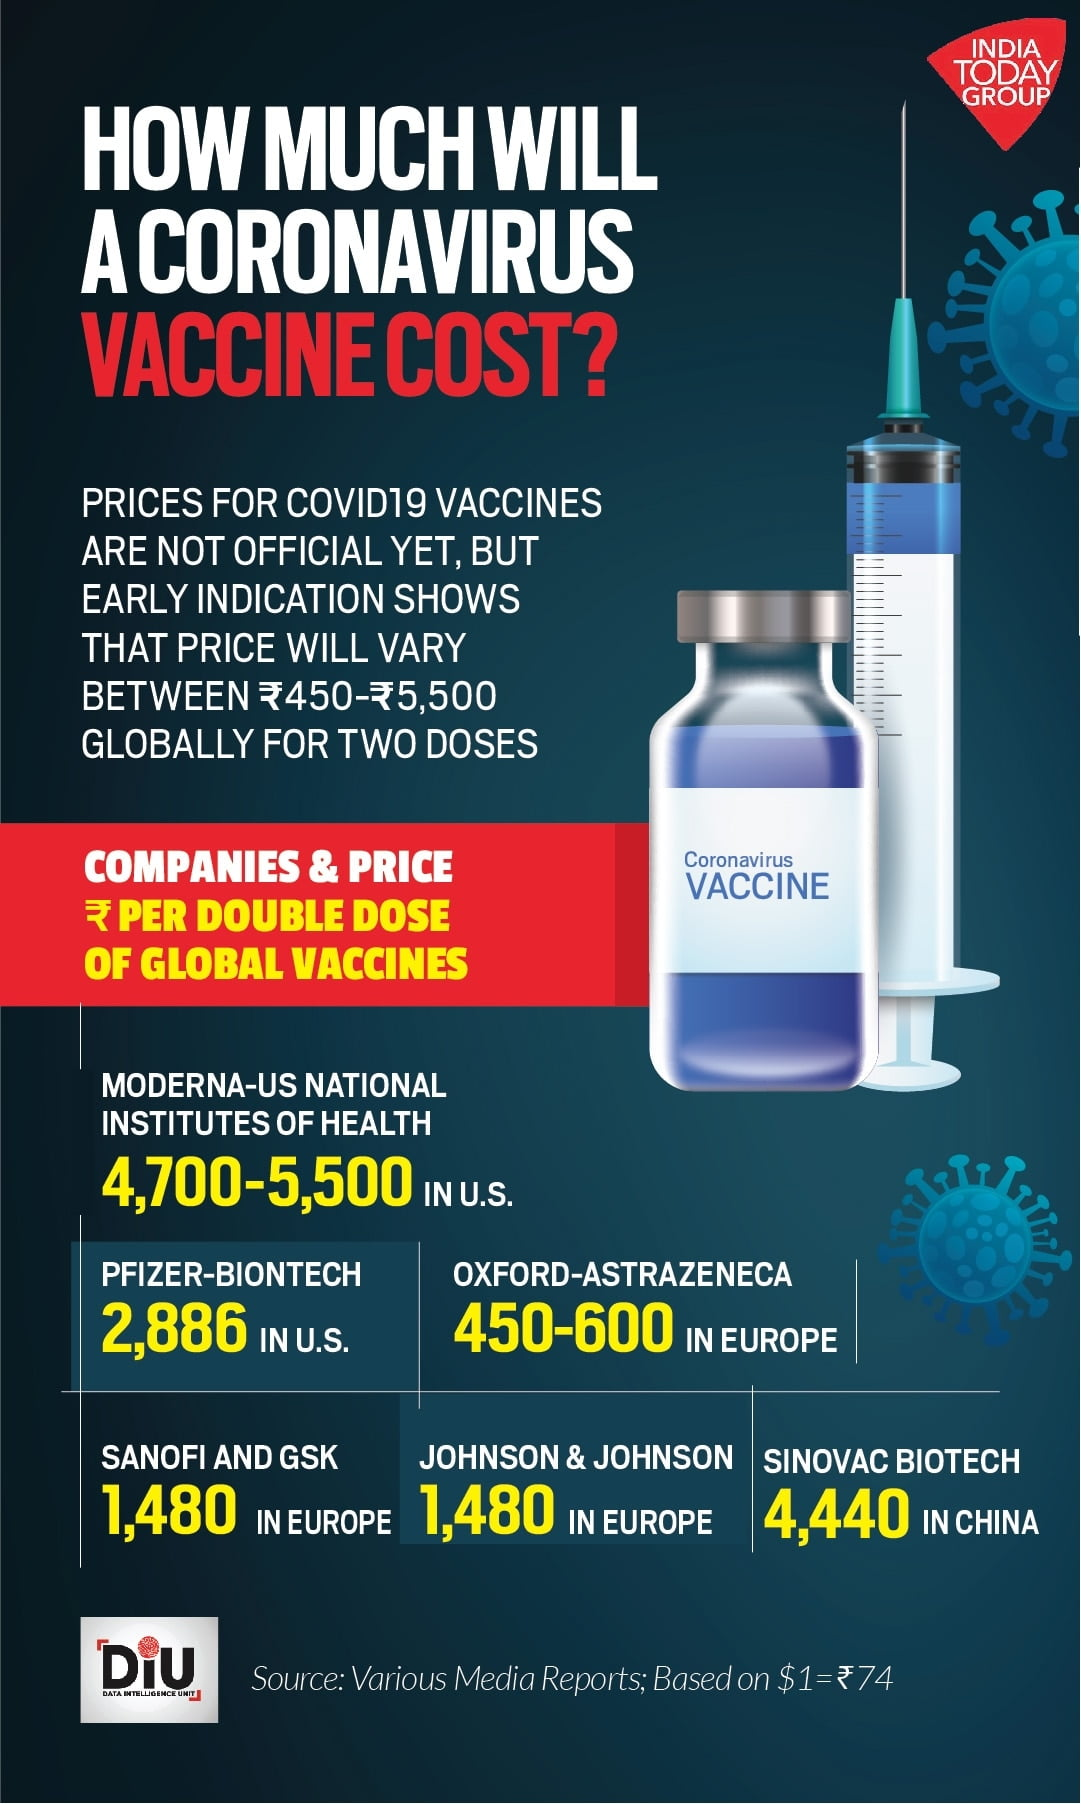 Pfizer and Moderna could make $ 32 billion from COVID-19 vaccine sales